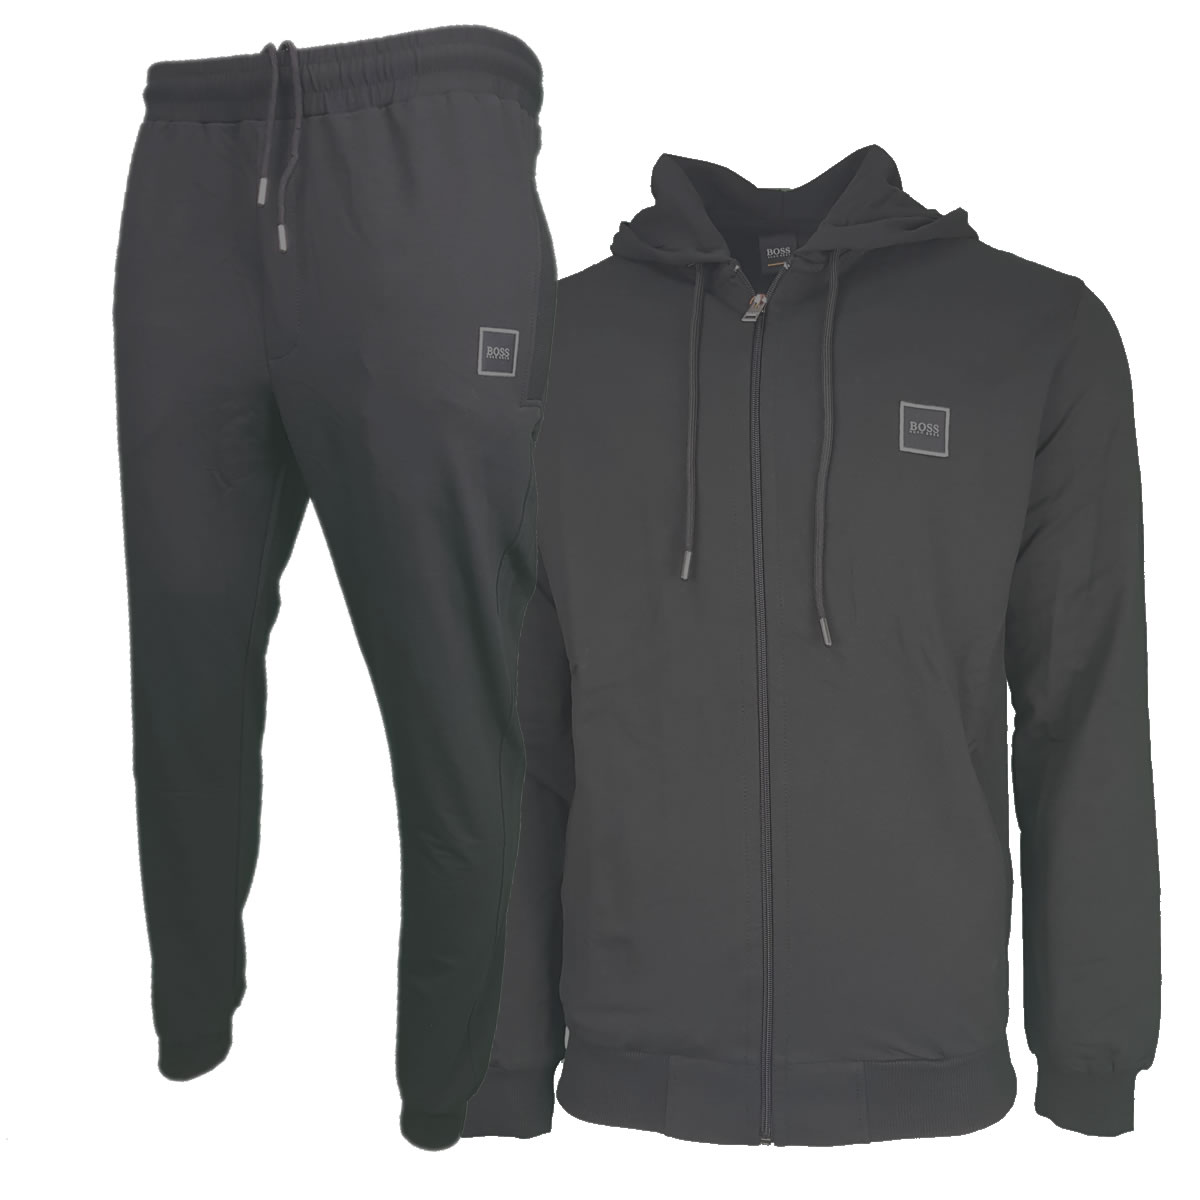 174cdca7a Hugo Boss Pavlik Tracksuit Top Jacket & Bottoms with Contrast Logo in Black